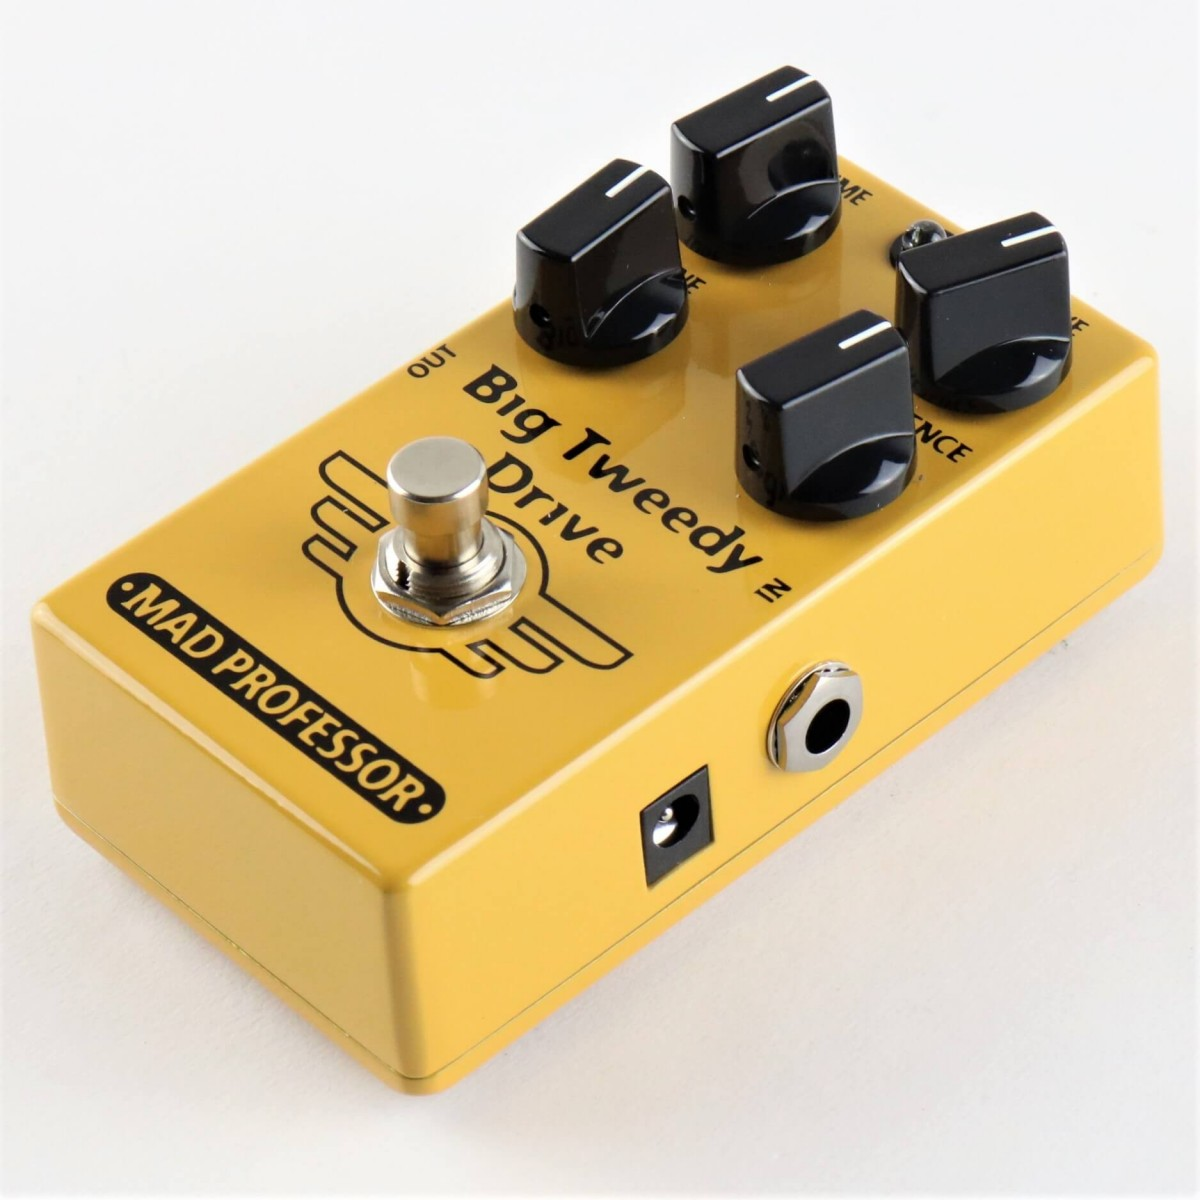 ALL PARTS LOCKING ROLLER TUNEMATIC